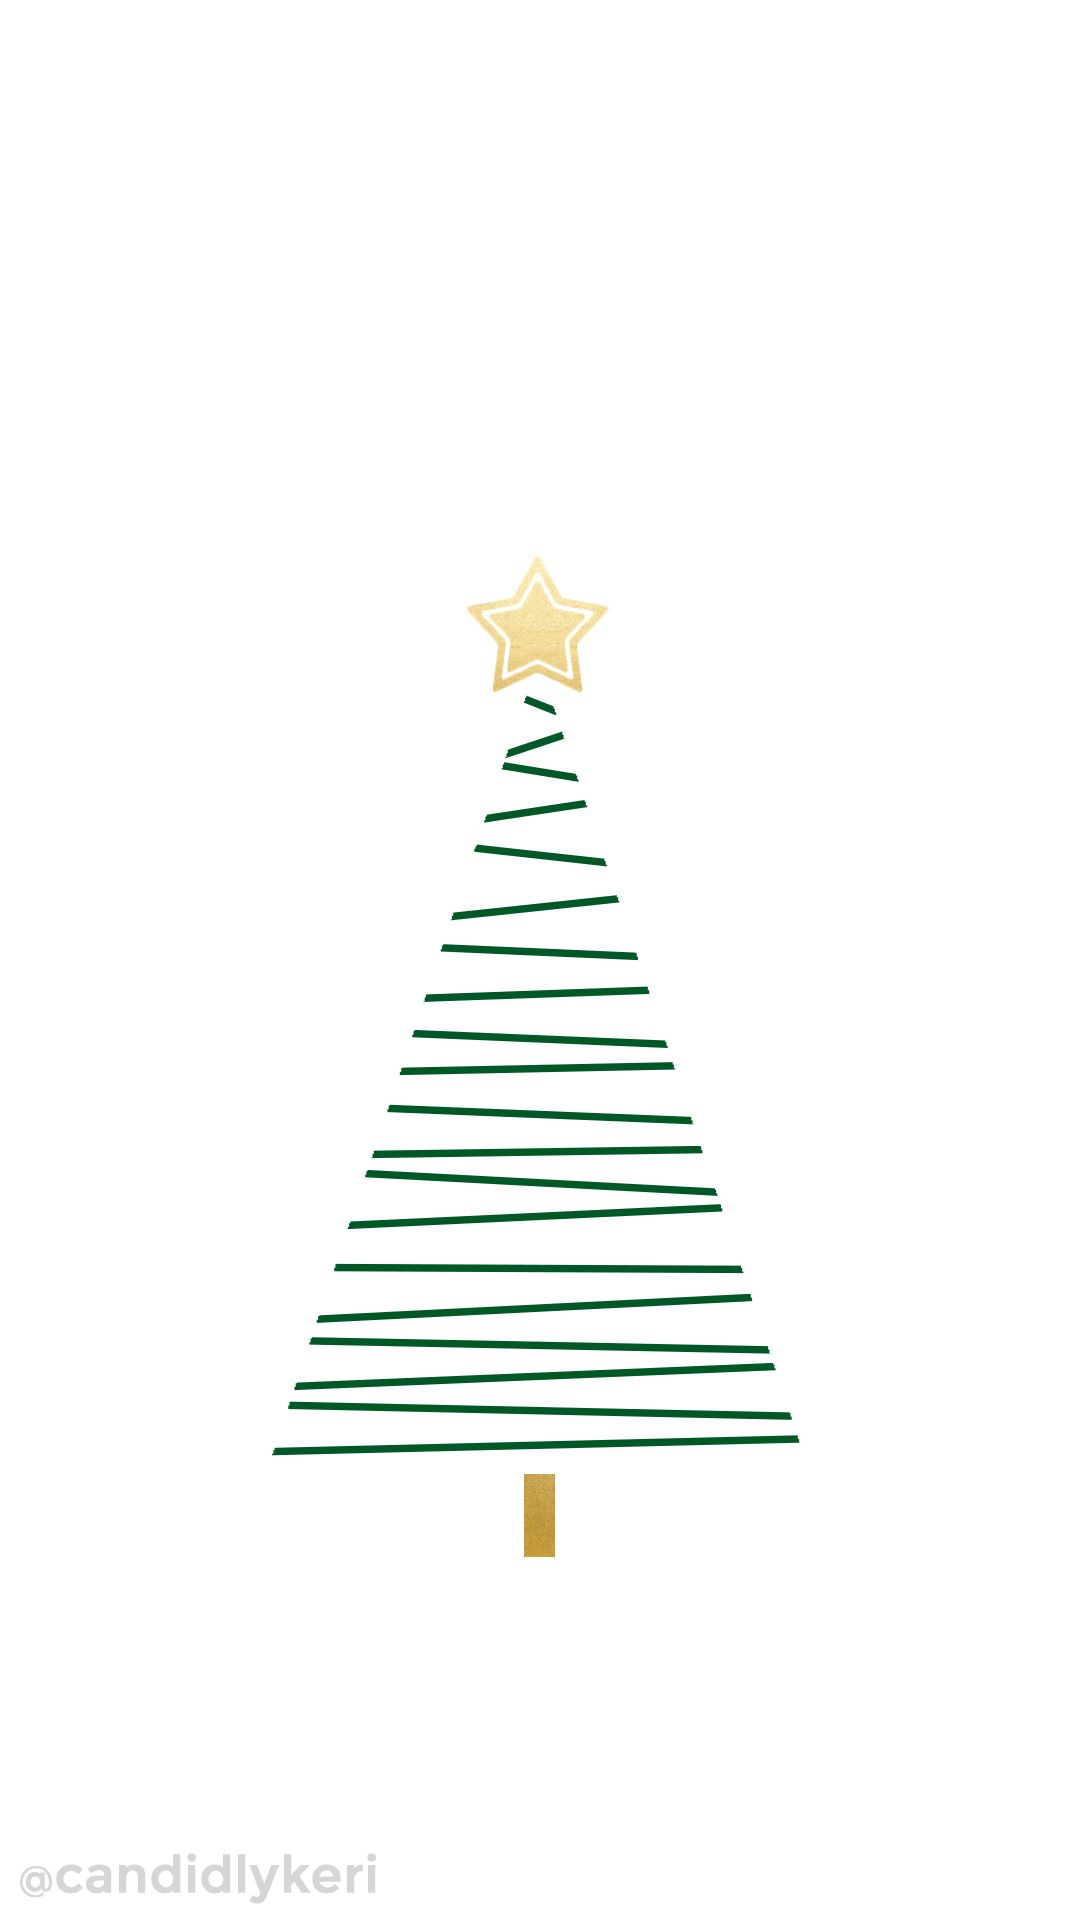 christmas tree cartoon drawing background wallpaper you can download for free on the blo christmas tree drawing tree wallpaper iphone christmas phone wallpaper christmas tree drawing